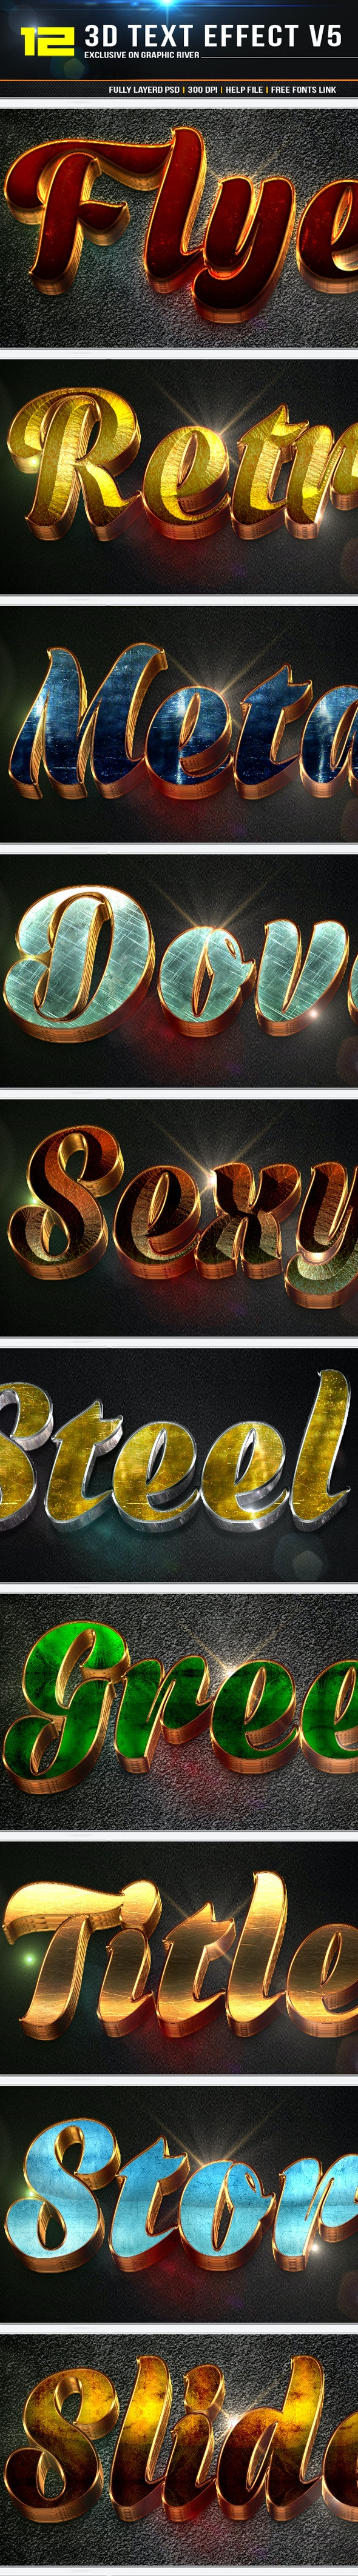 12 3D Text Effect v7 - Text Effects Styles